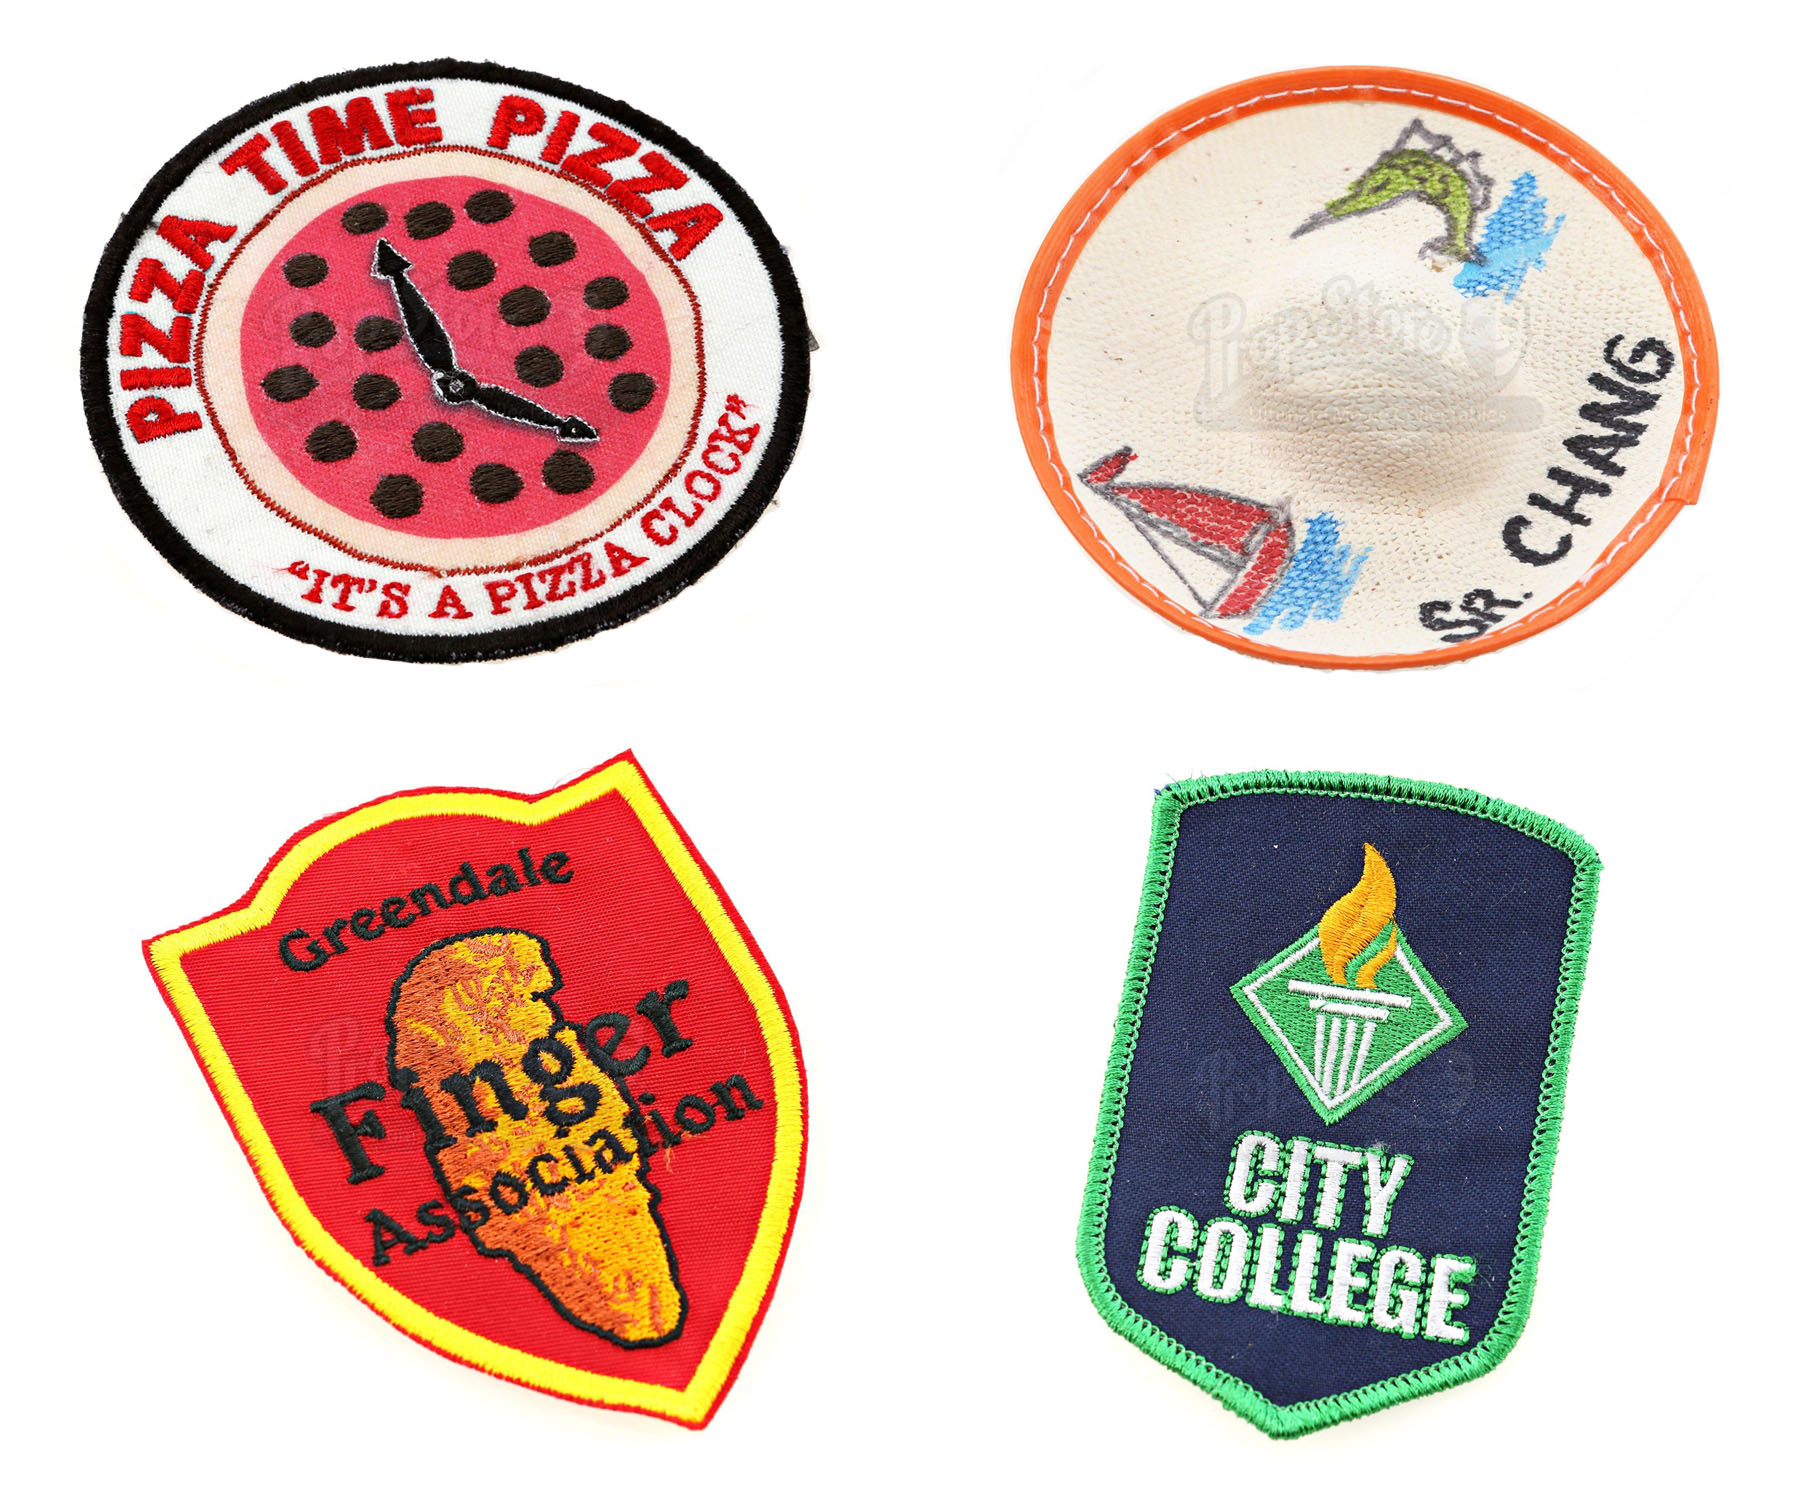 Clockwise from left: Toby's (Robert Tarpinian) Pizza Patch, Britta Perry's (Gillian Jacobs) Mini Sombrero, City College Debate Team Patch, Finger Association Patch